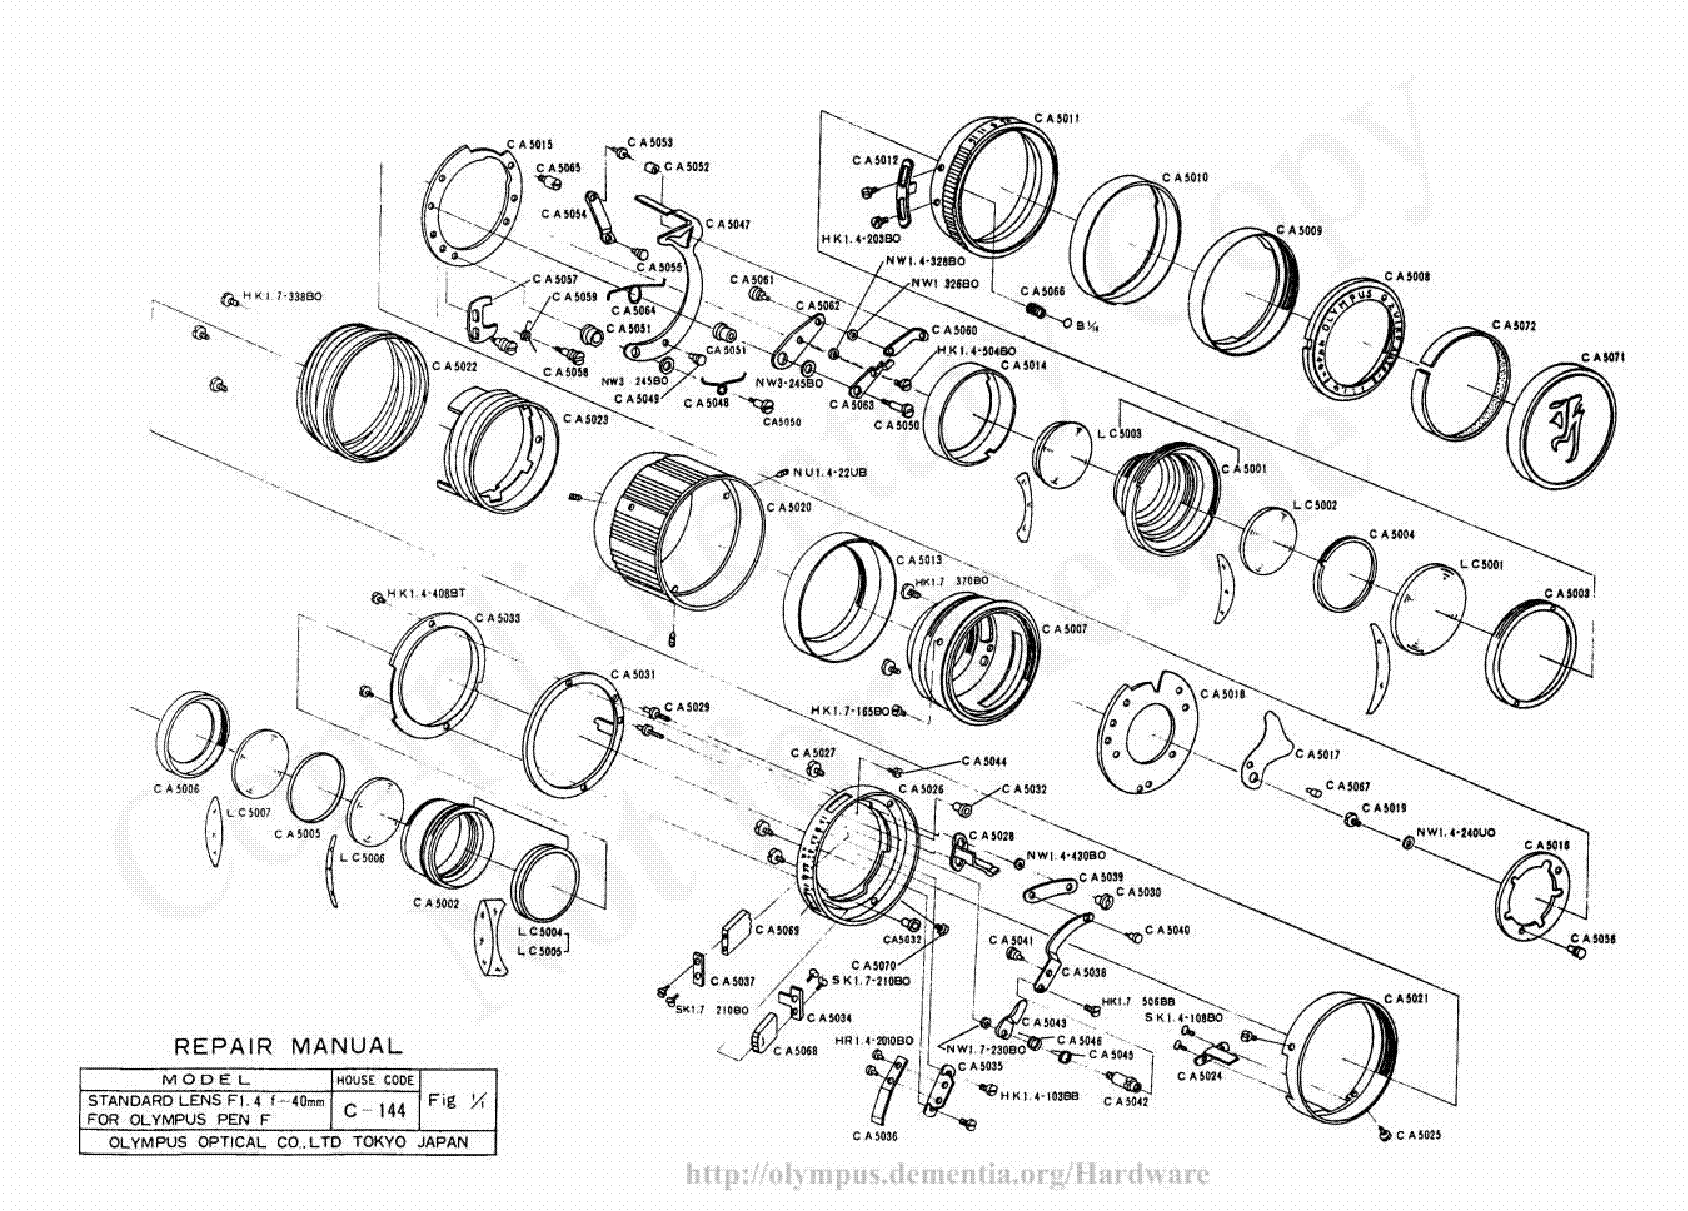 OLYMPUS 35EC-2 EXPLODED PARTS DIAGRAM Service Manual free